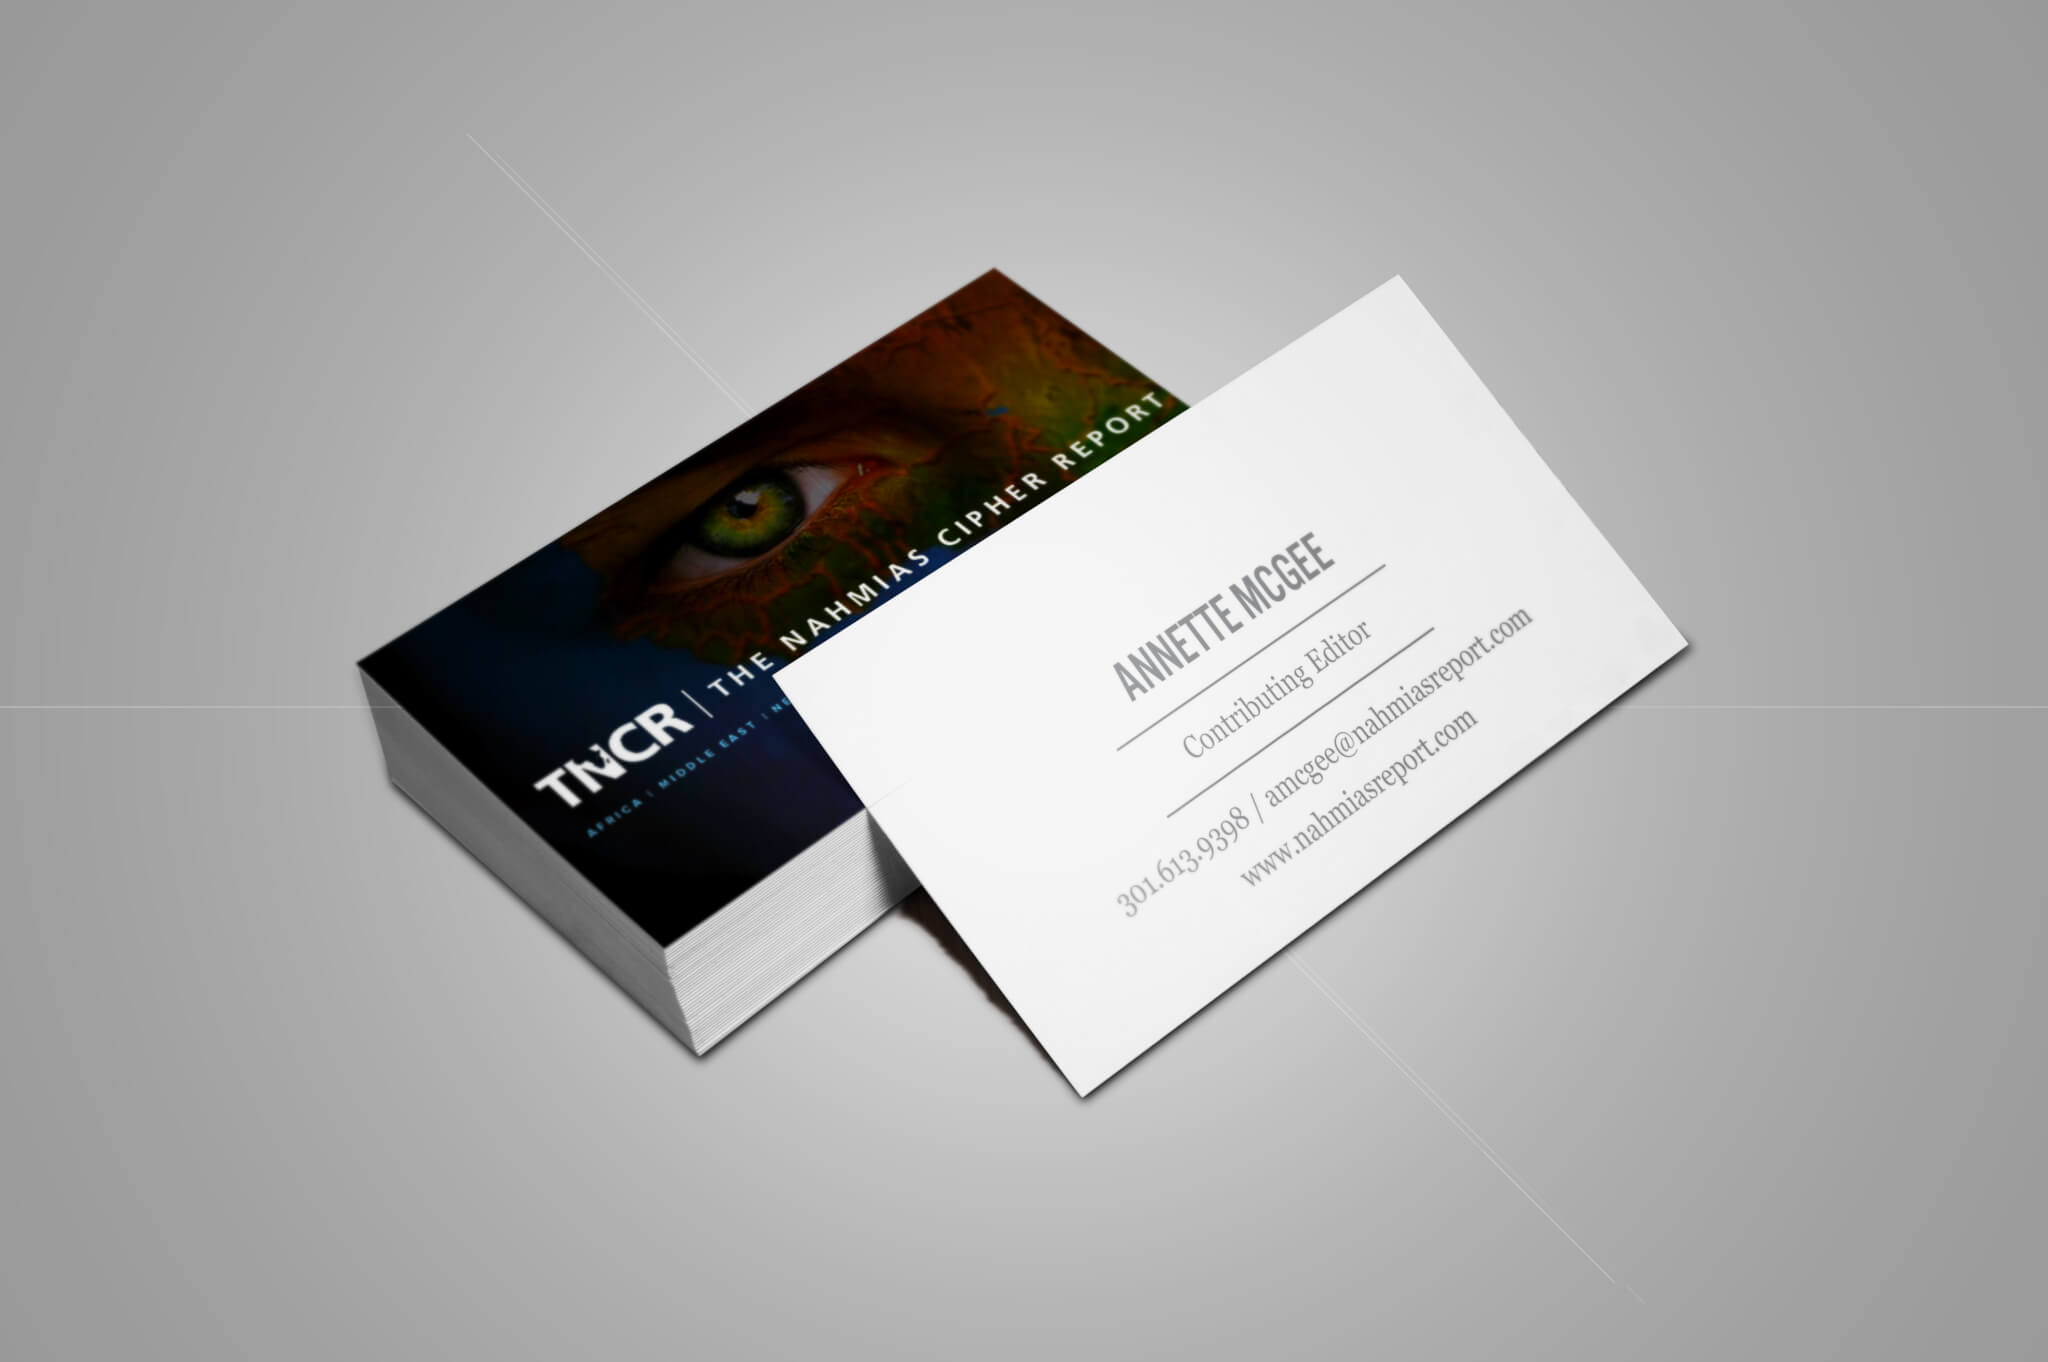 nahmias group understands that inexpensive business card solutions are ubiquitously available and it is our role to help clients differentiate their - Inexpensive Business Cards